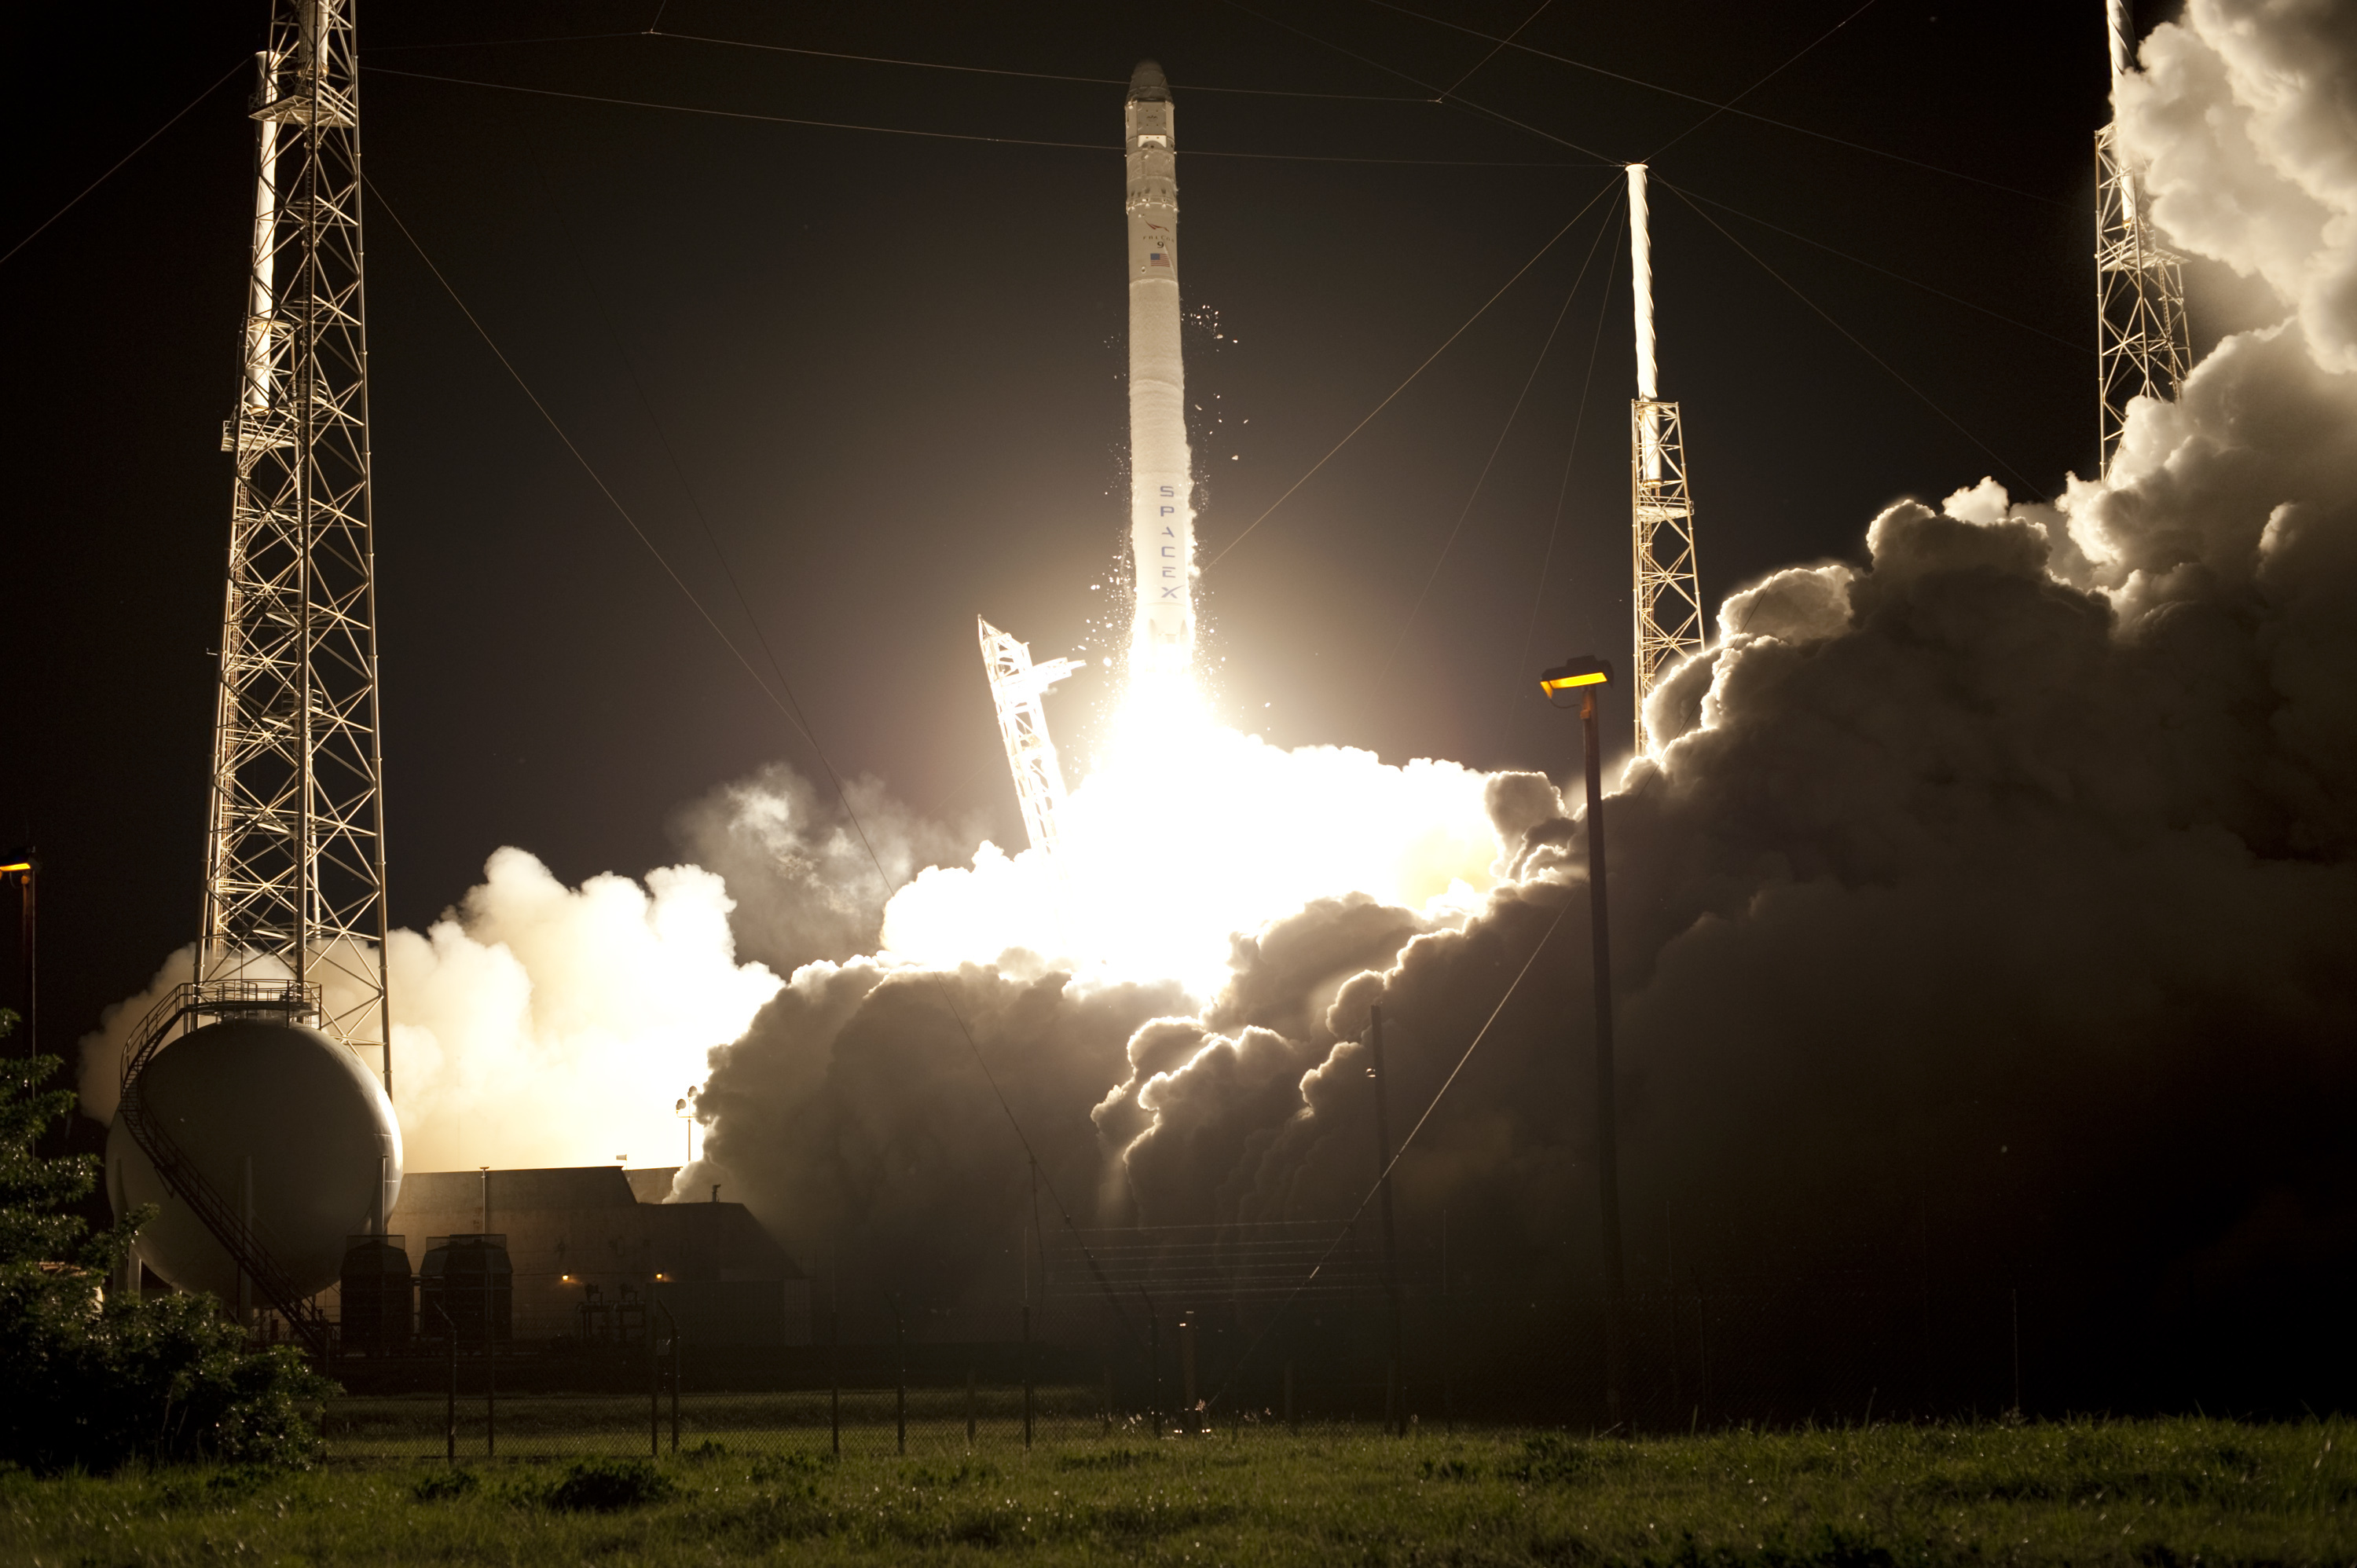 SpaceX Explosion,Space X,Elon Musk,Cape Canaveral,Kennedy Space Center Explosion,Cape C <a class='fecha' href='https://wallinside.com/post-56435194-spacex-explosion-destroyed-falcon-9-will-expense-hundreds-of-millions-of-dollars-and-.html'>read more...</a>    <div style='text-align:center' class='comment_new'><a href='https://wallinside.com/post-56435194-spacex-explosion-destroyed-falcon-9-will-expense-hundreds-of-millions-of-dollars-and-.html'>Share</a></div> <br /><hr class='style-two'>    </div>    </article>   </div></div></div></div> <aside id=